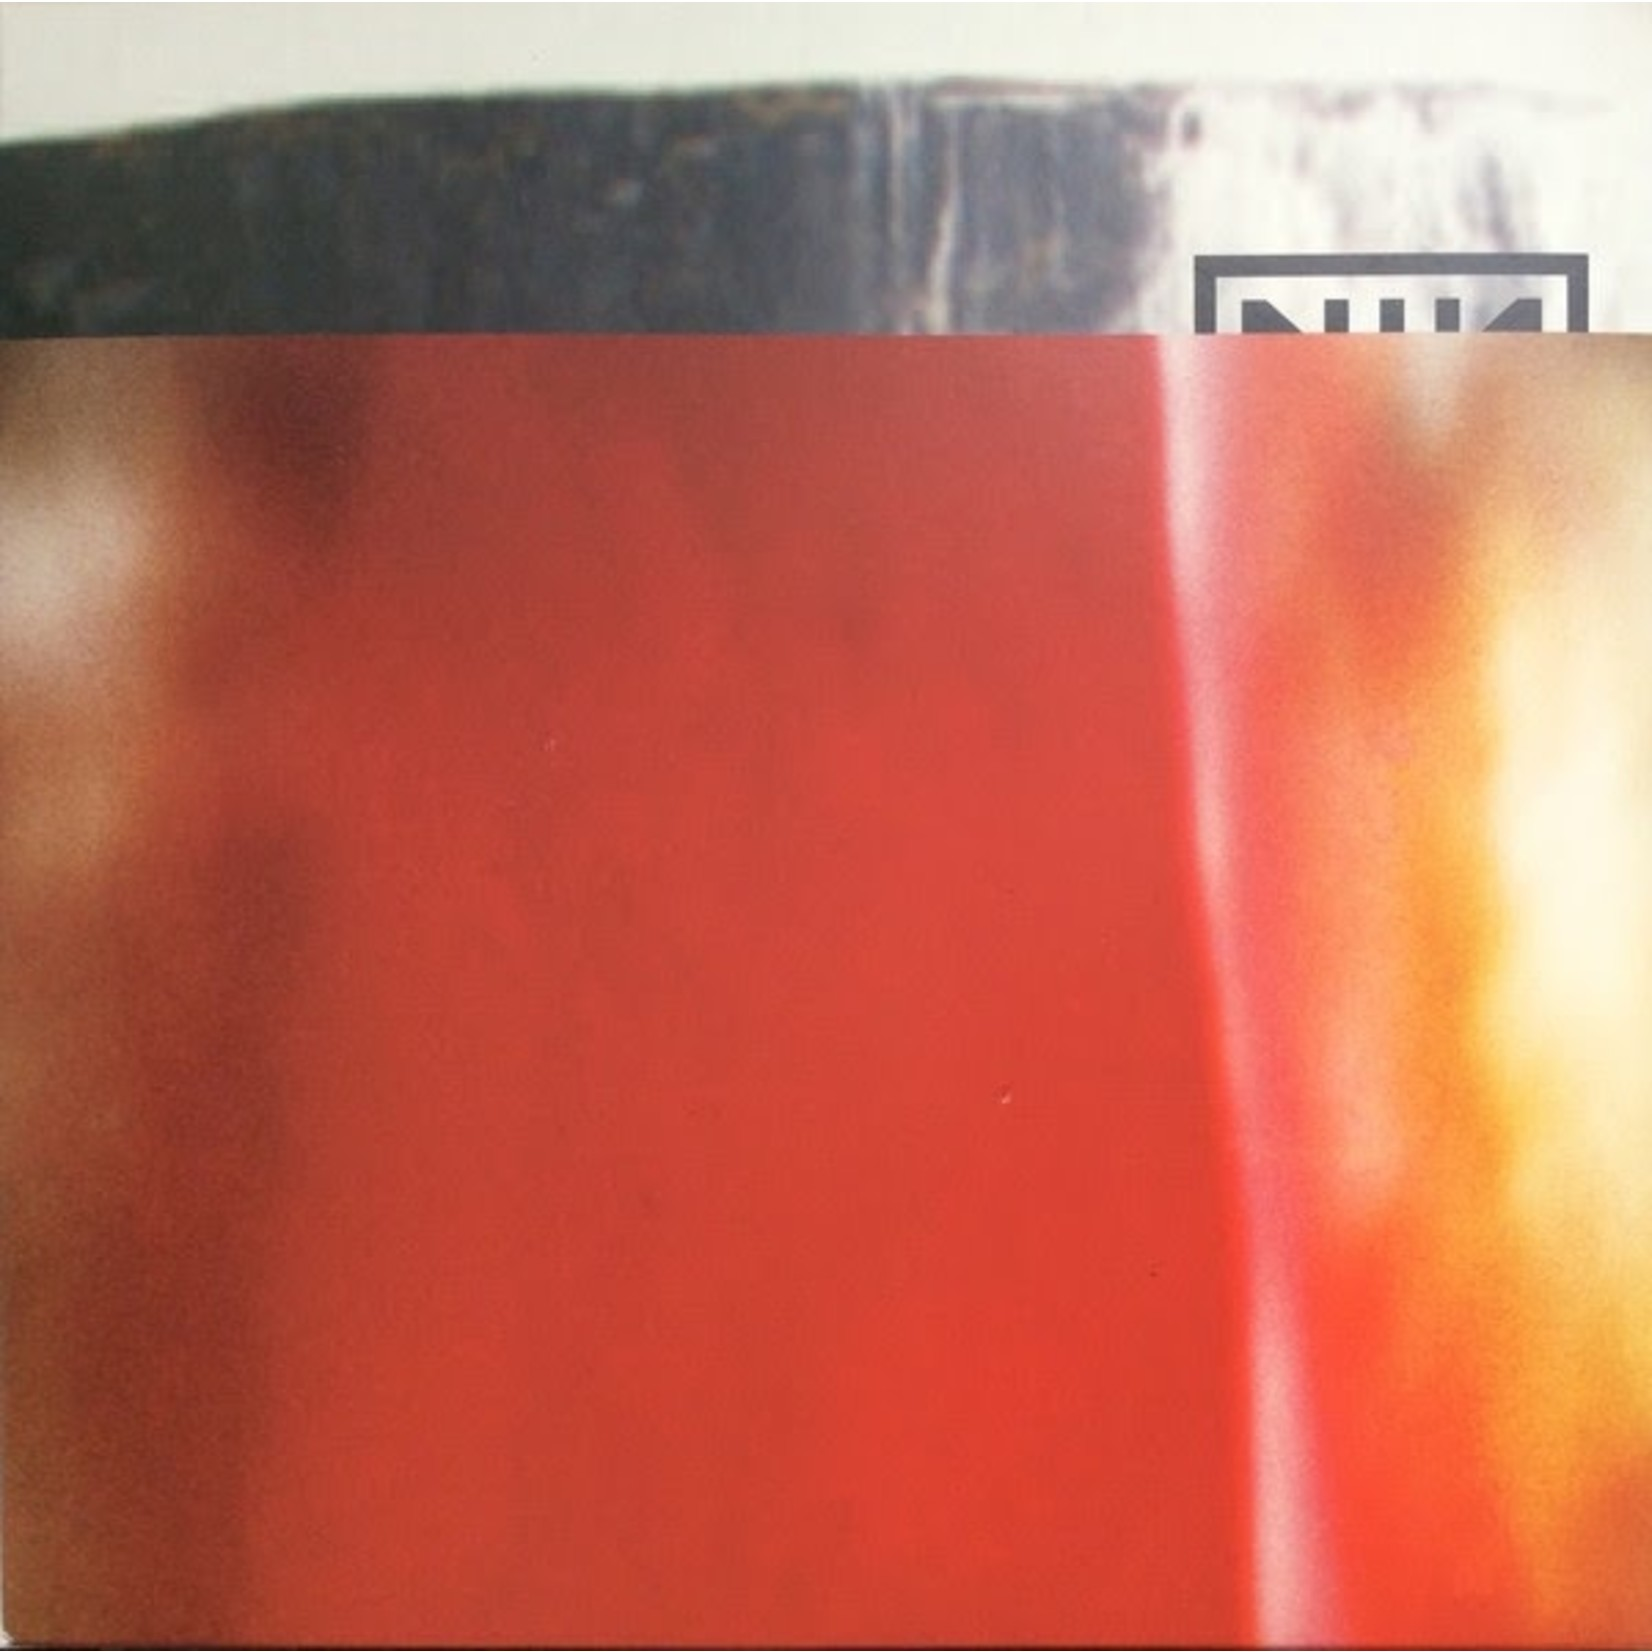 [New] Nine Inch Nails: The Fragile (3LP, The Definitive Ed.)